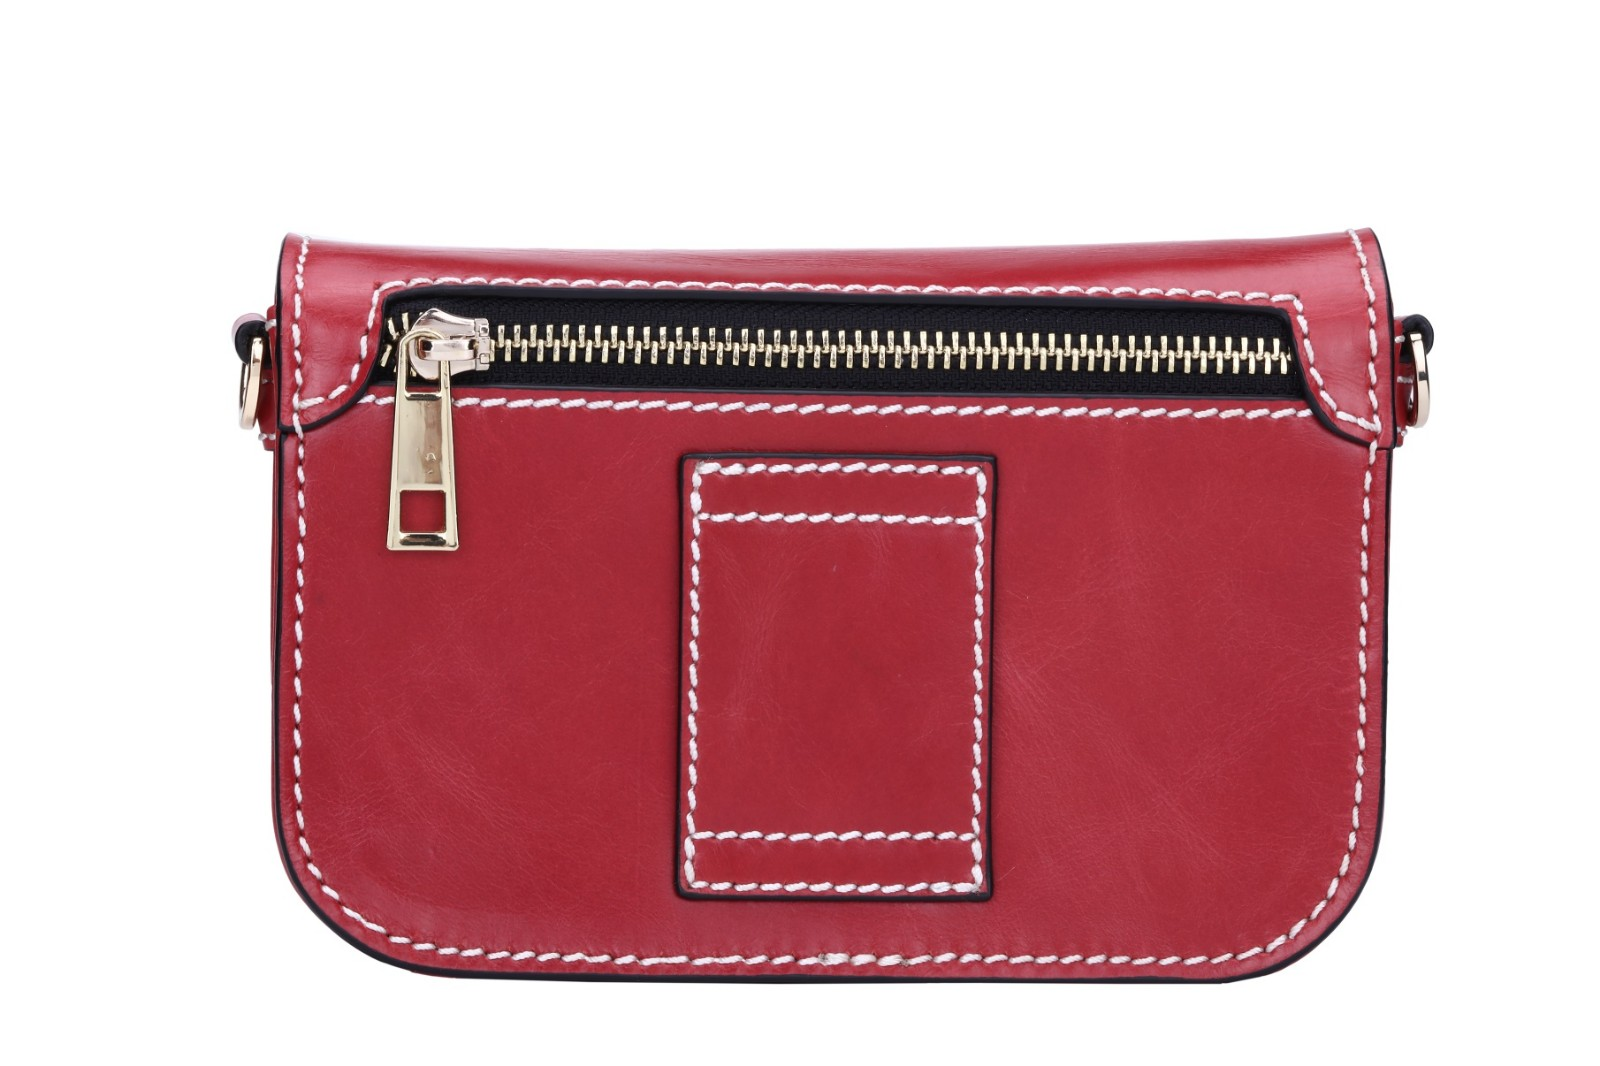 GF bags-Find Evening Clutch Bags | Gaofeng Bags Hand Clutch Purse-6